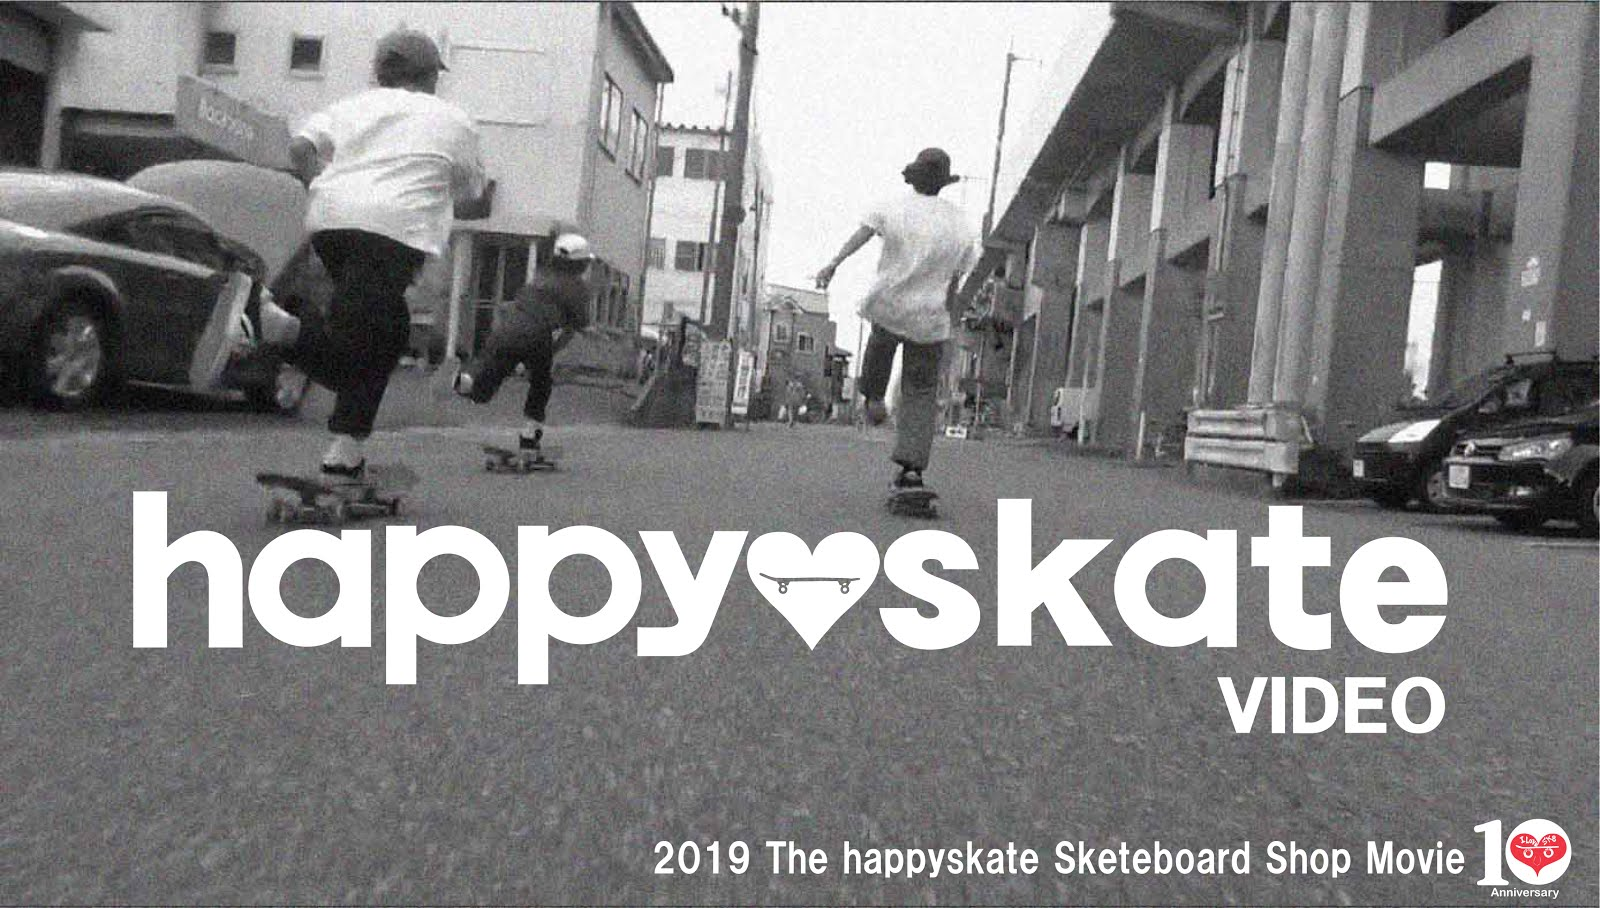 happyskate VIDEO